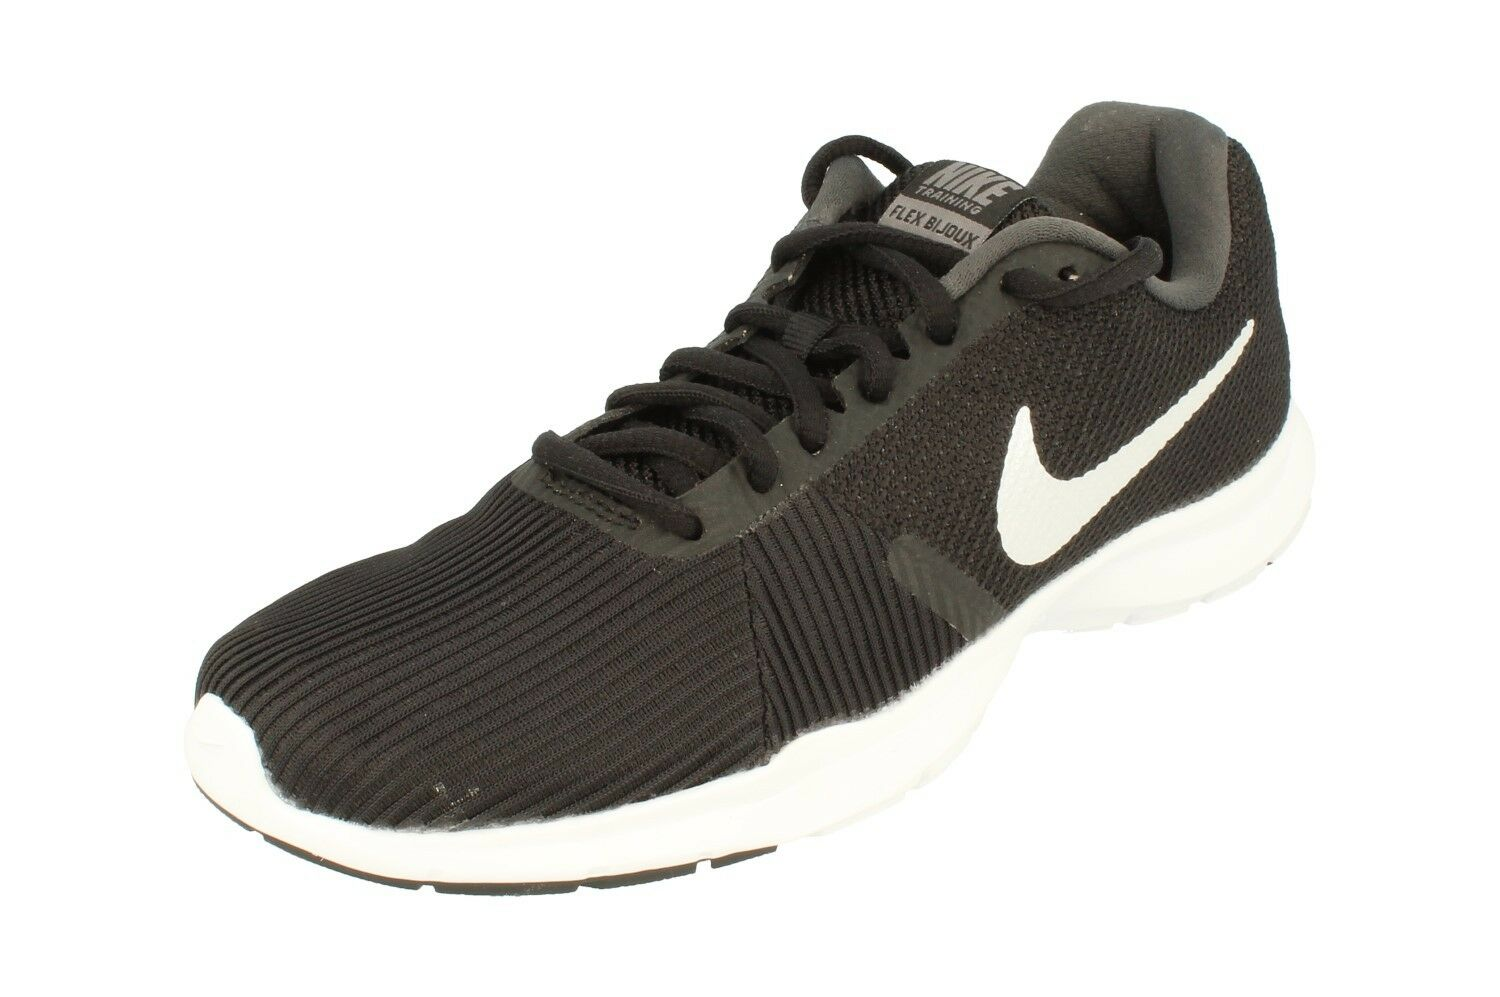 8e89dddd5120 Nike Womens Flex Bijoux Running Trainers 881863 Sneakers shoes 001 001 001  ff727a